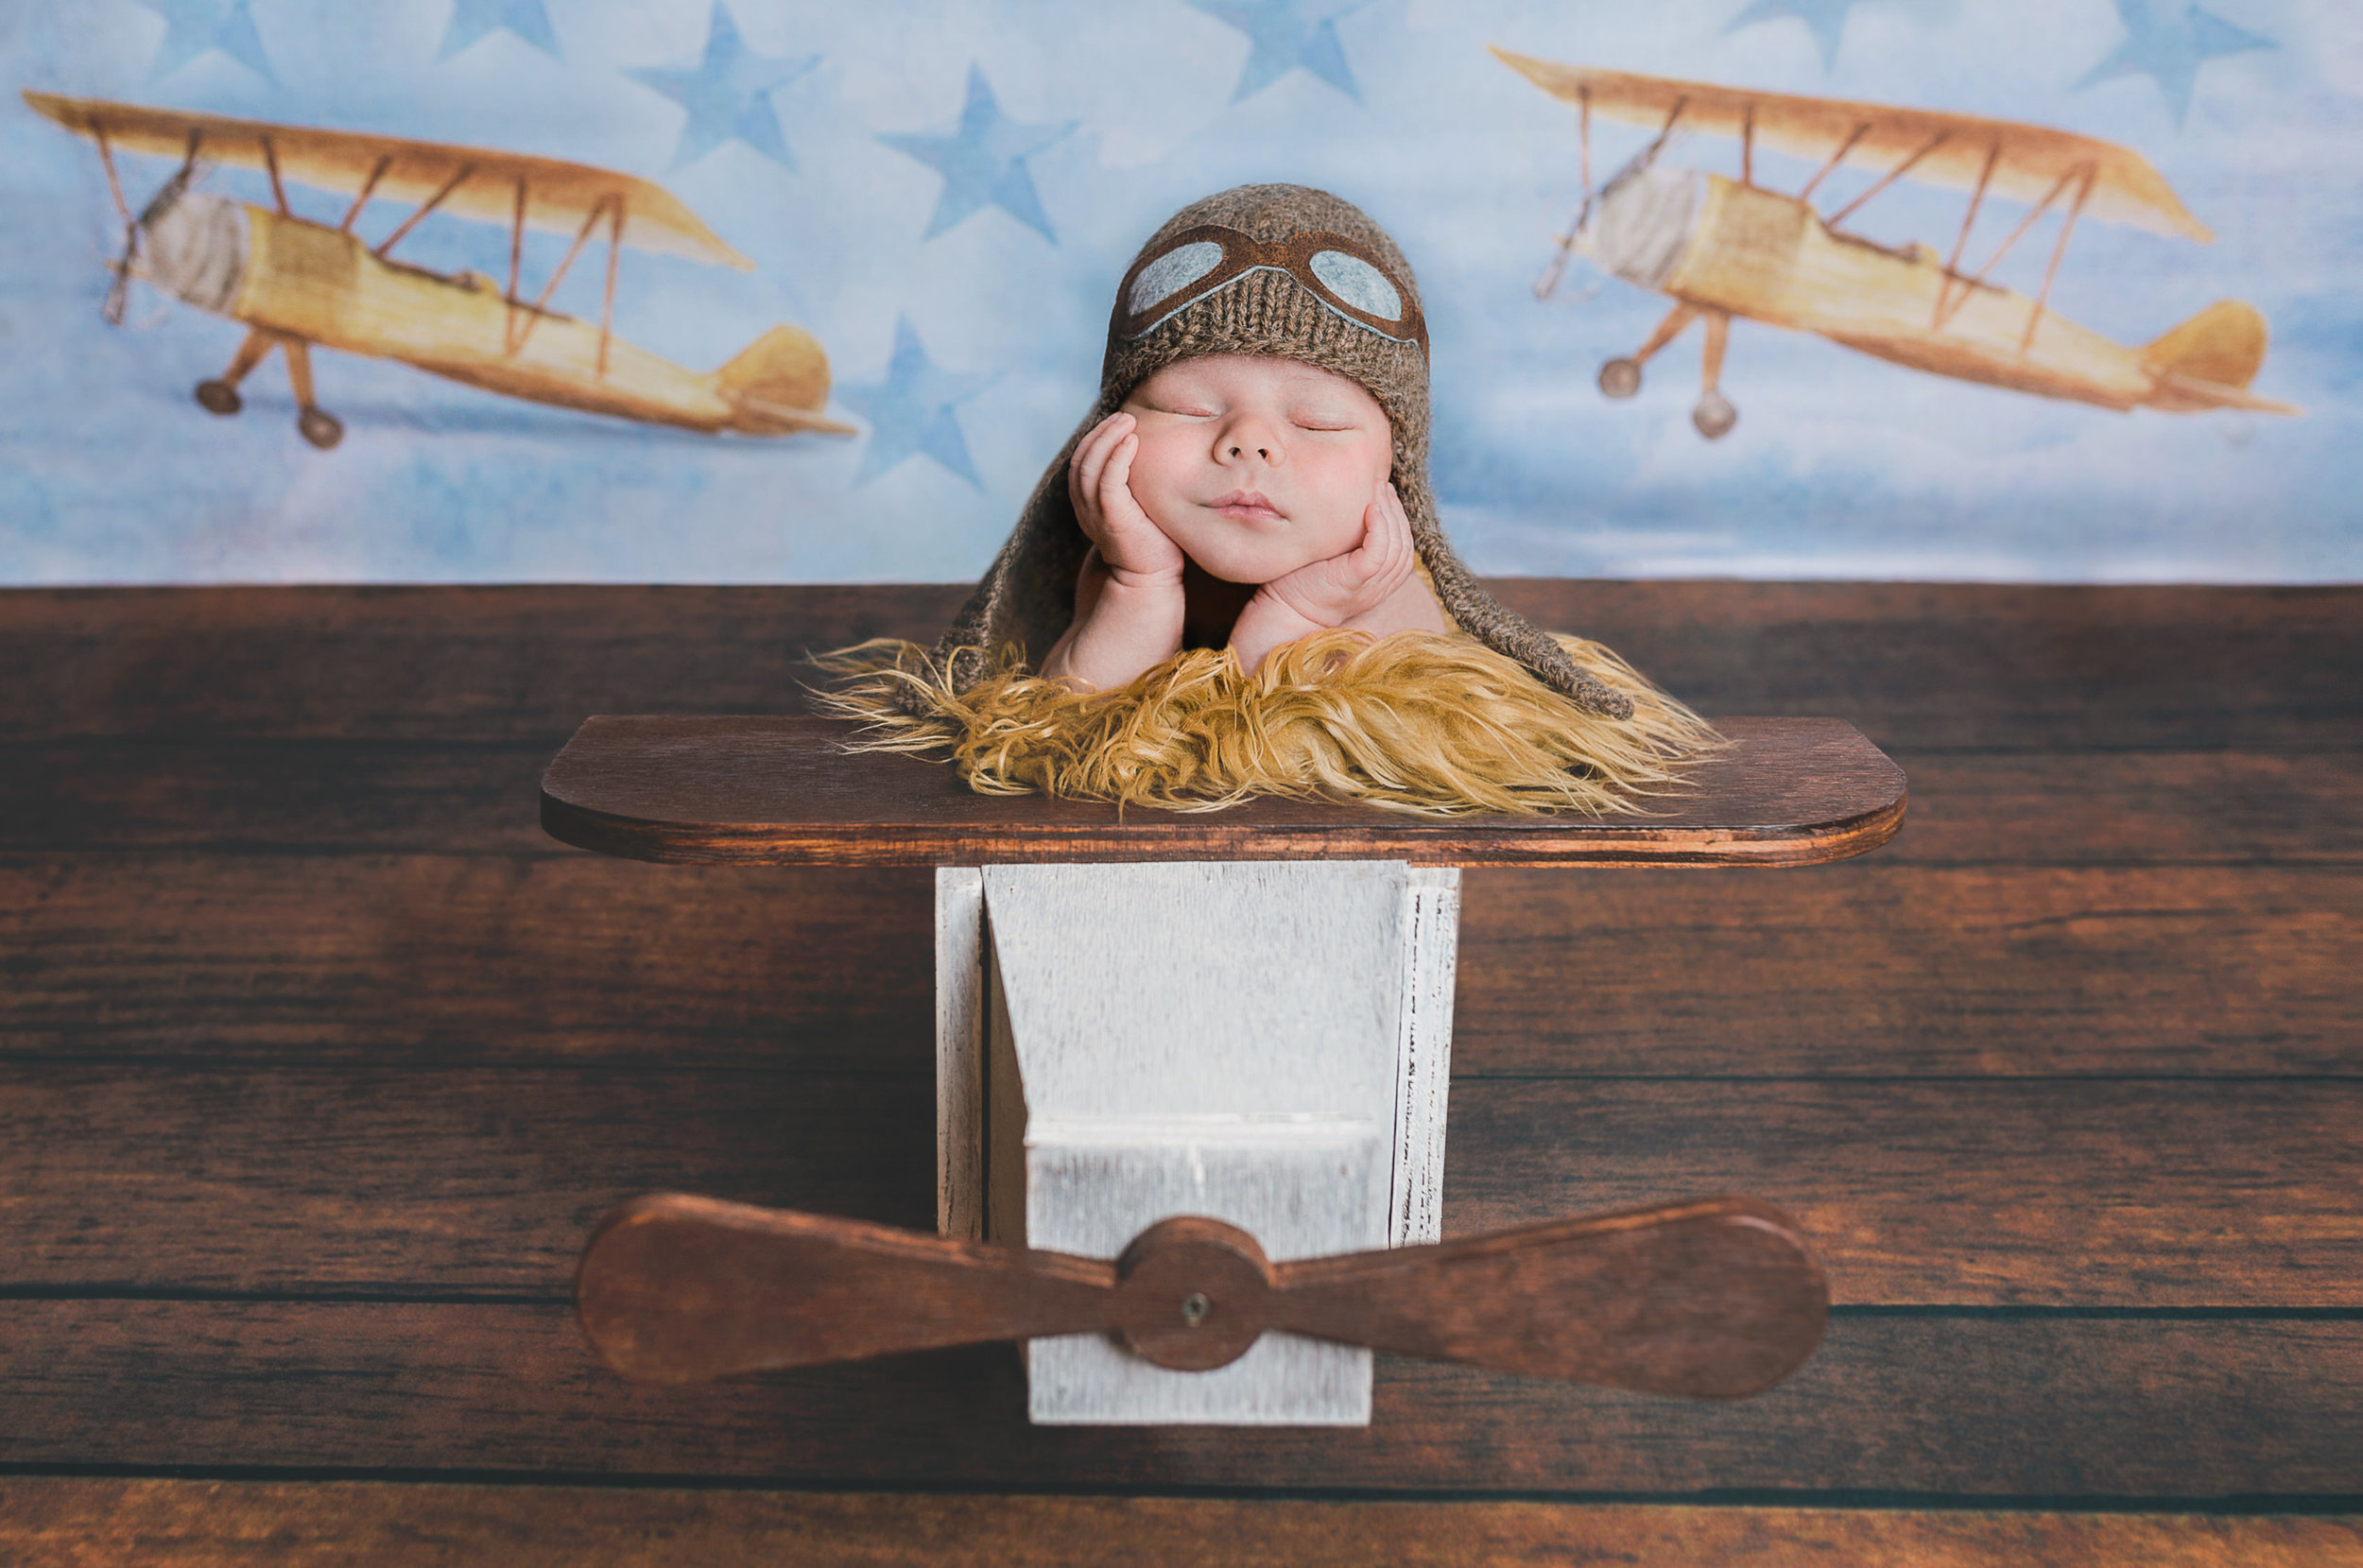 Ebensburg-Johnstown-PA-newborn-baby-portrait-photographer_009.jpg